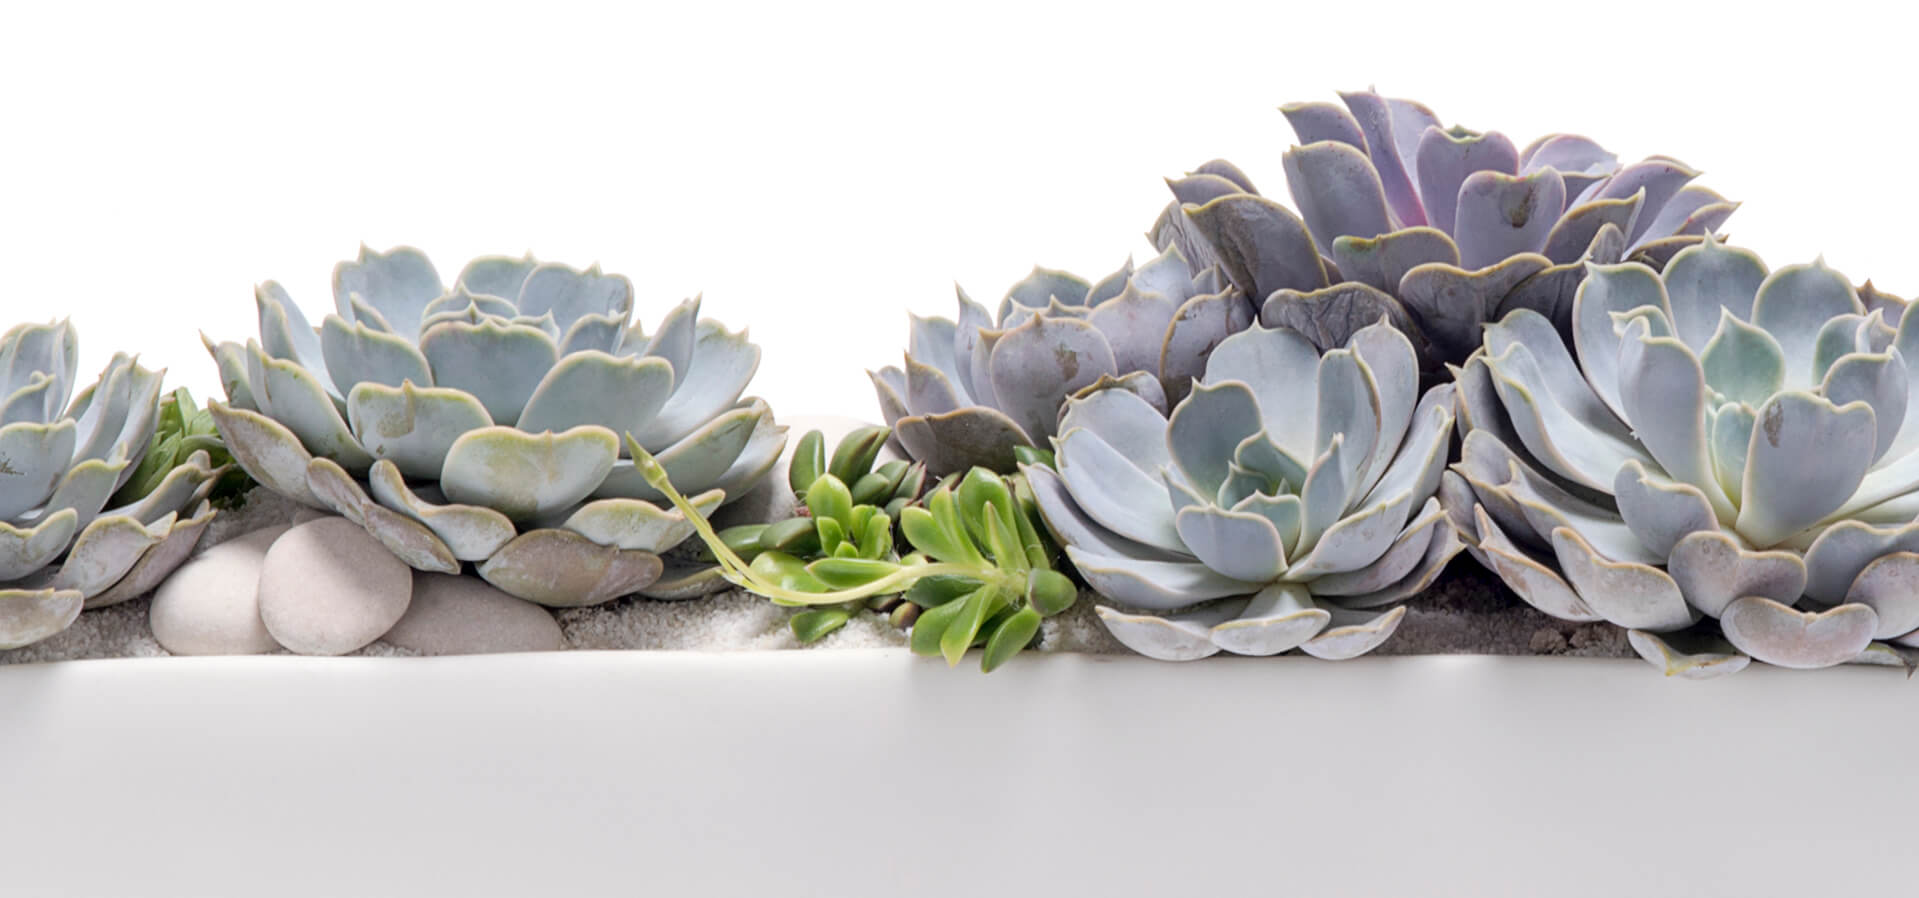 Succulents symbolic meaning